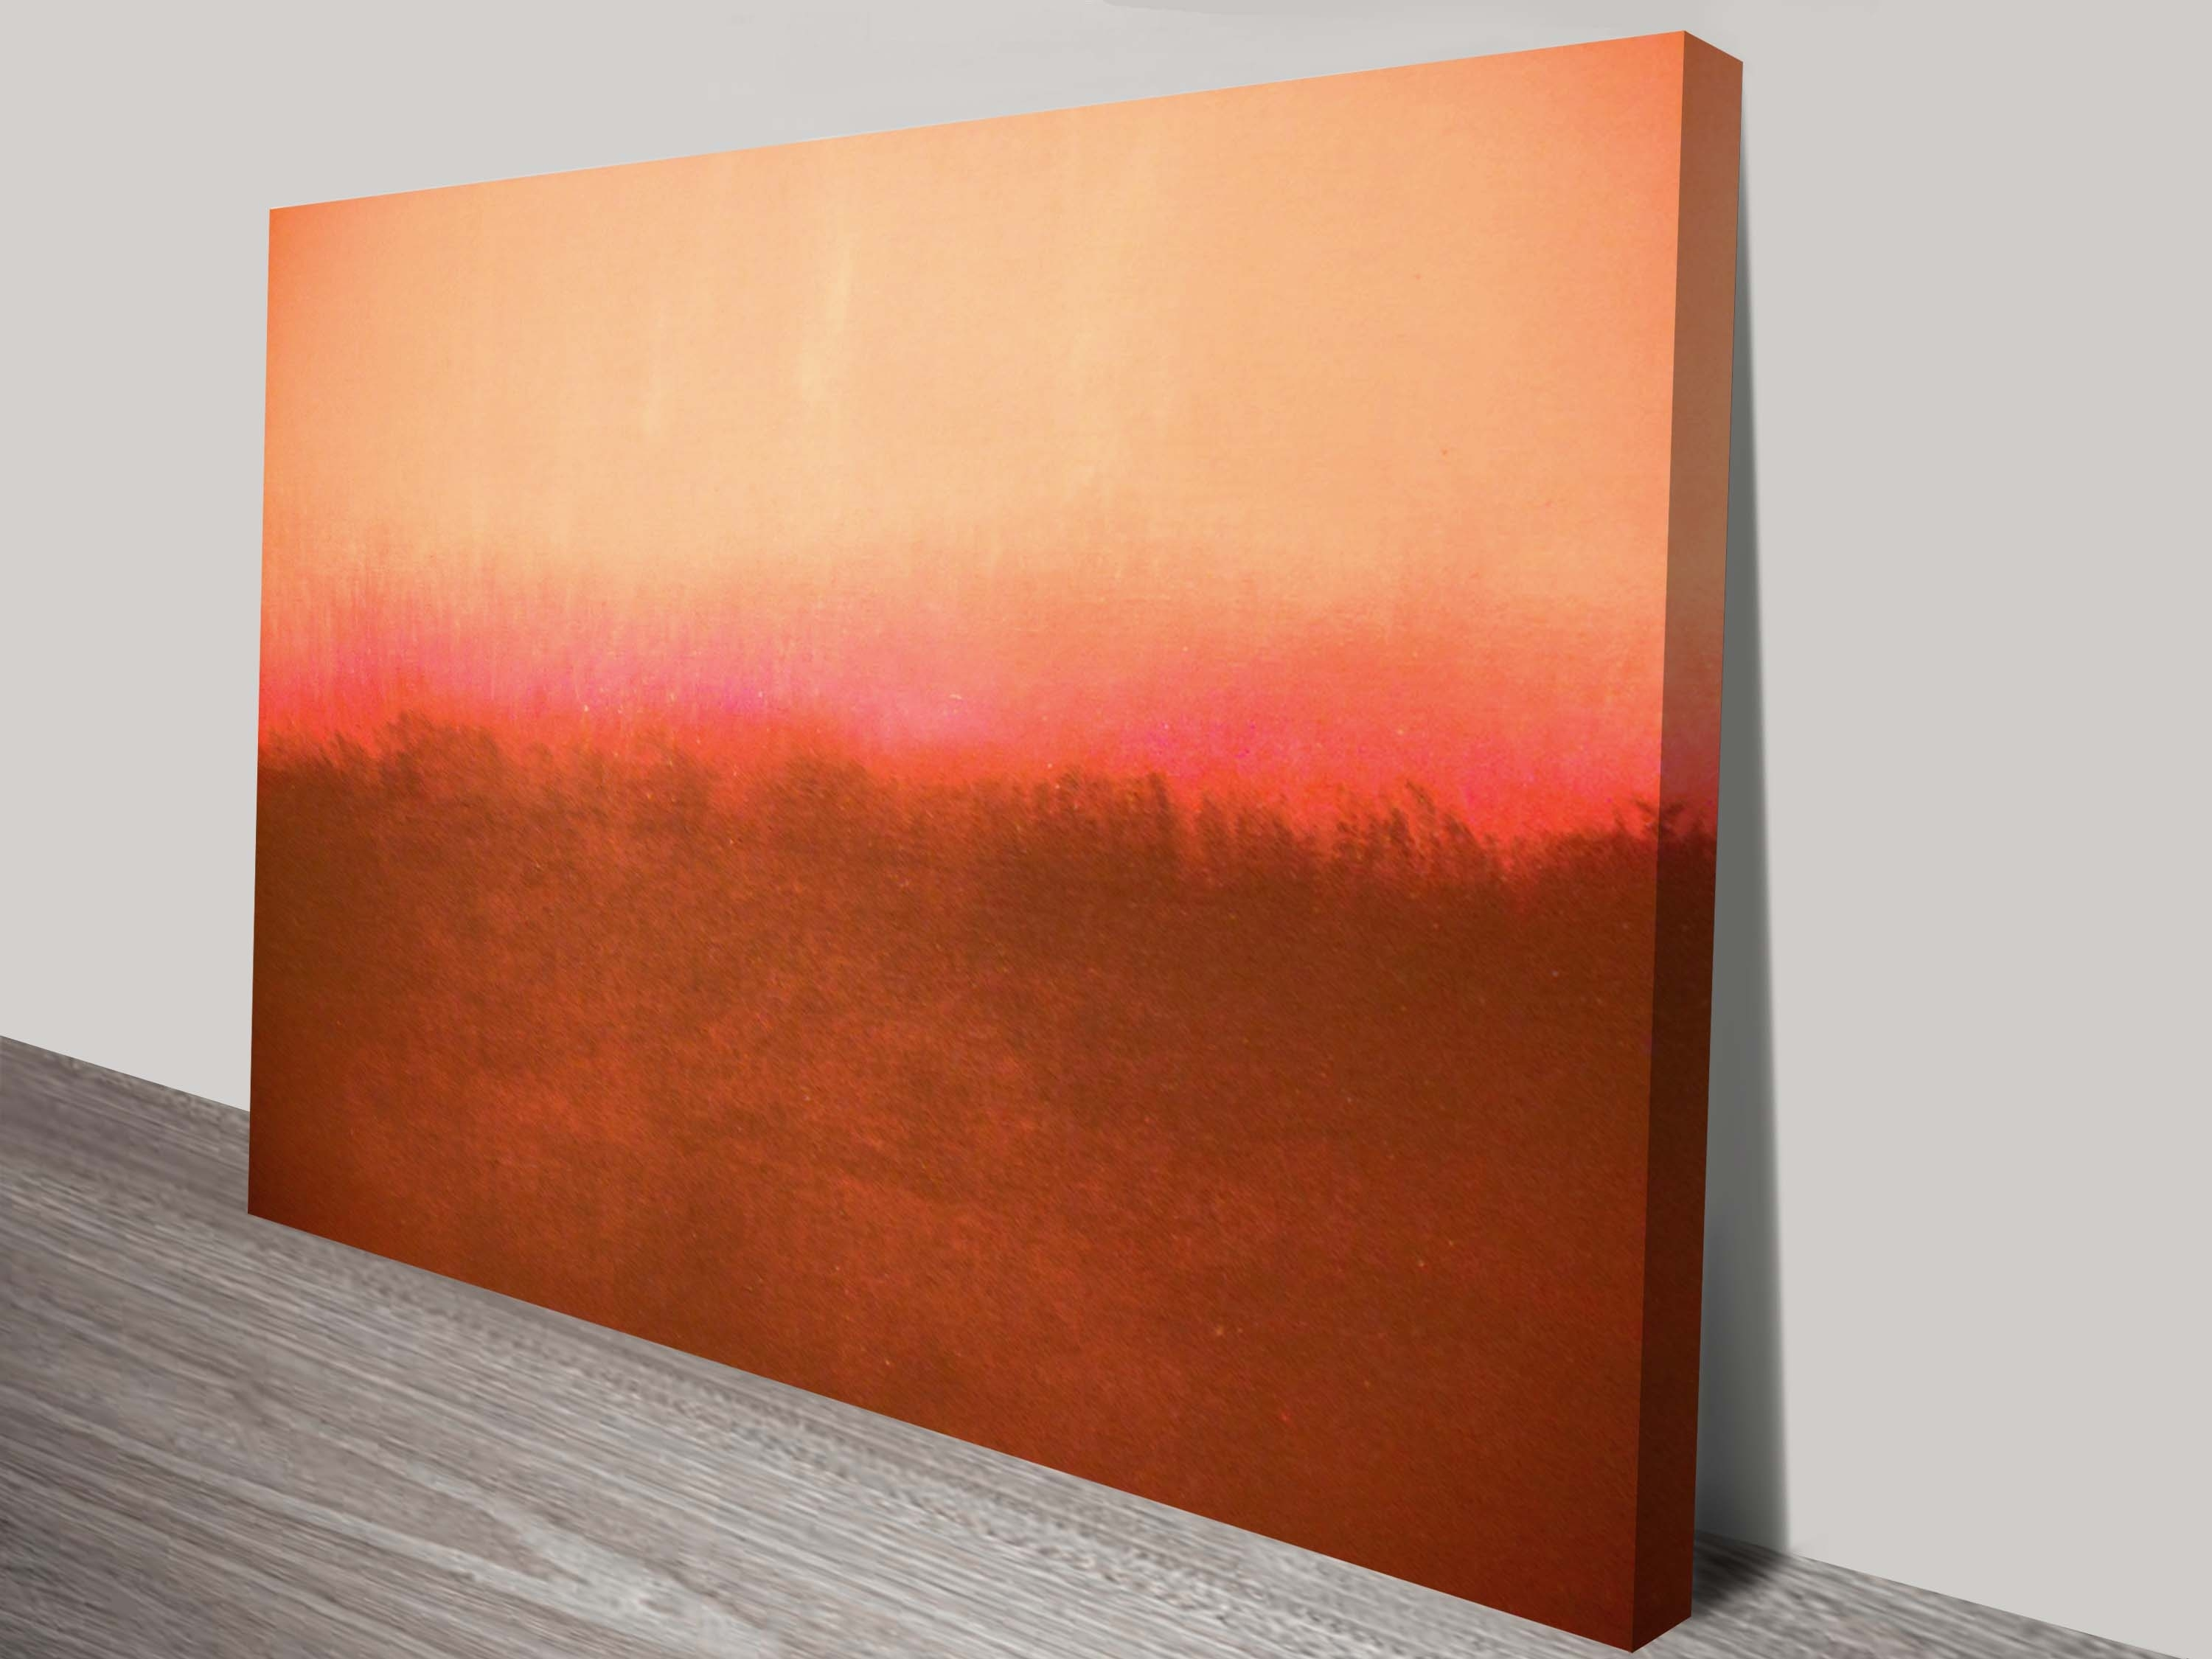 Mark Rothko Painting Print On Canvas With Best And Newest Abstract Wall Art Canvas (View 13 of 20)